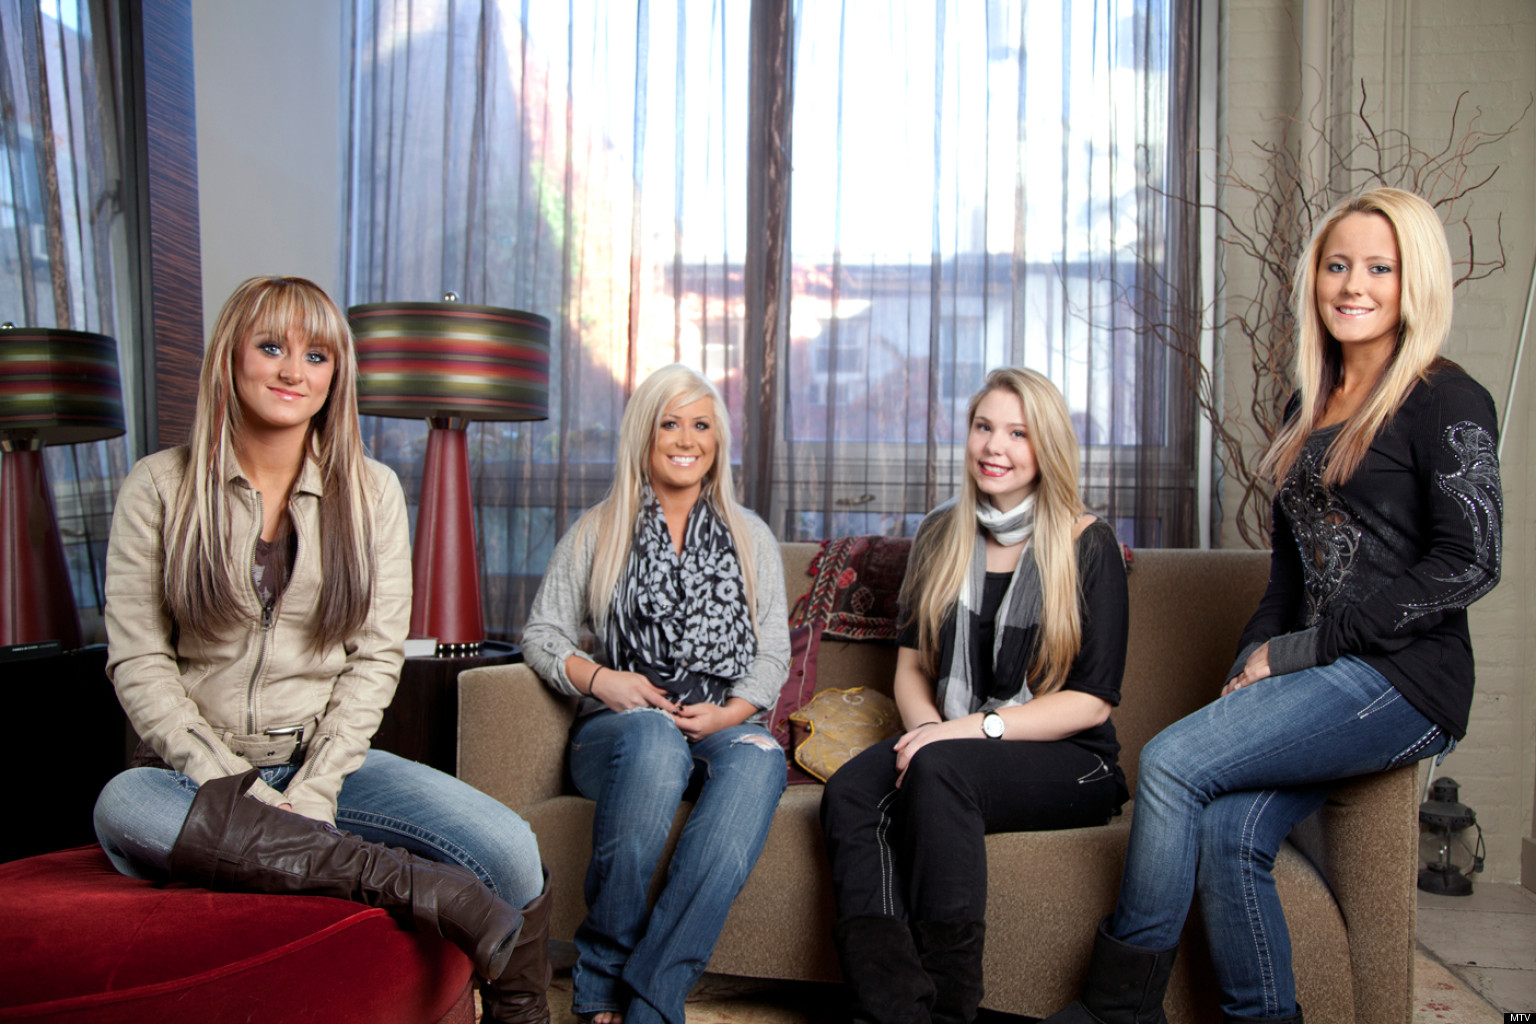 keep-teen-moms-from-polygamist-and-erotic-nude